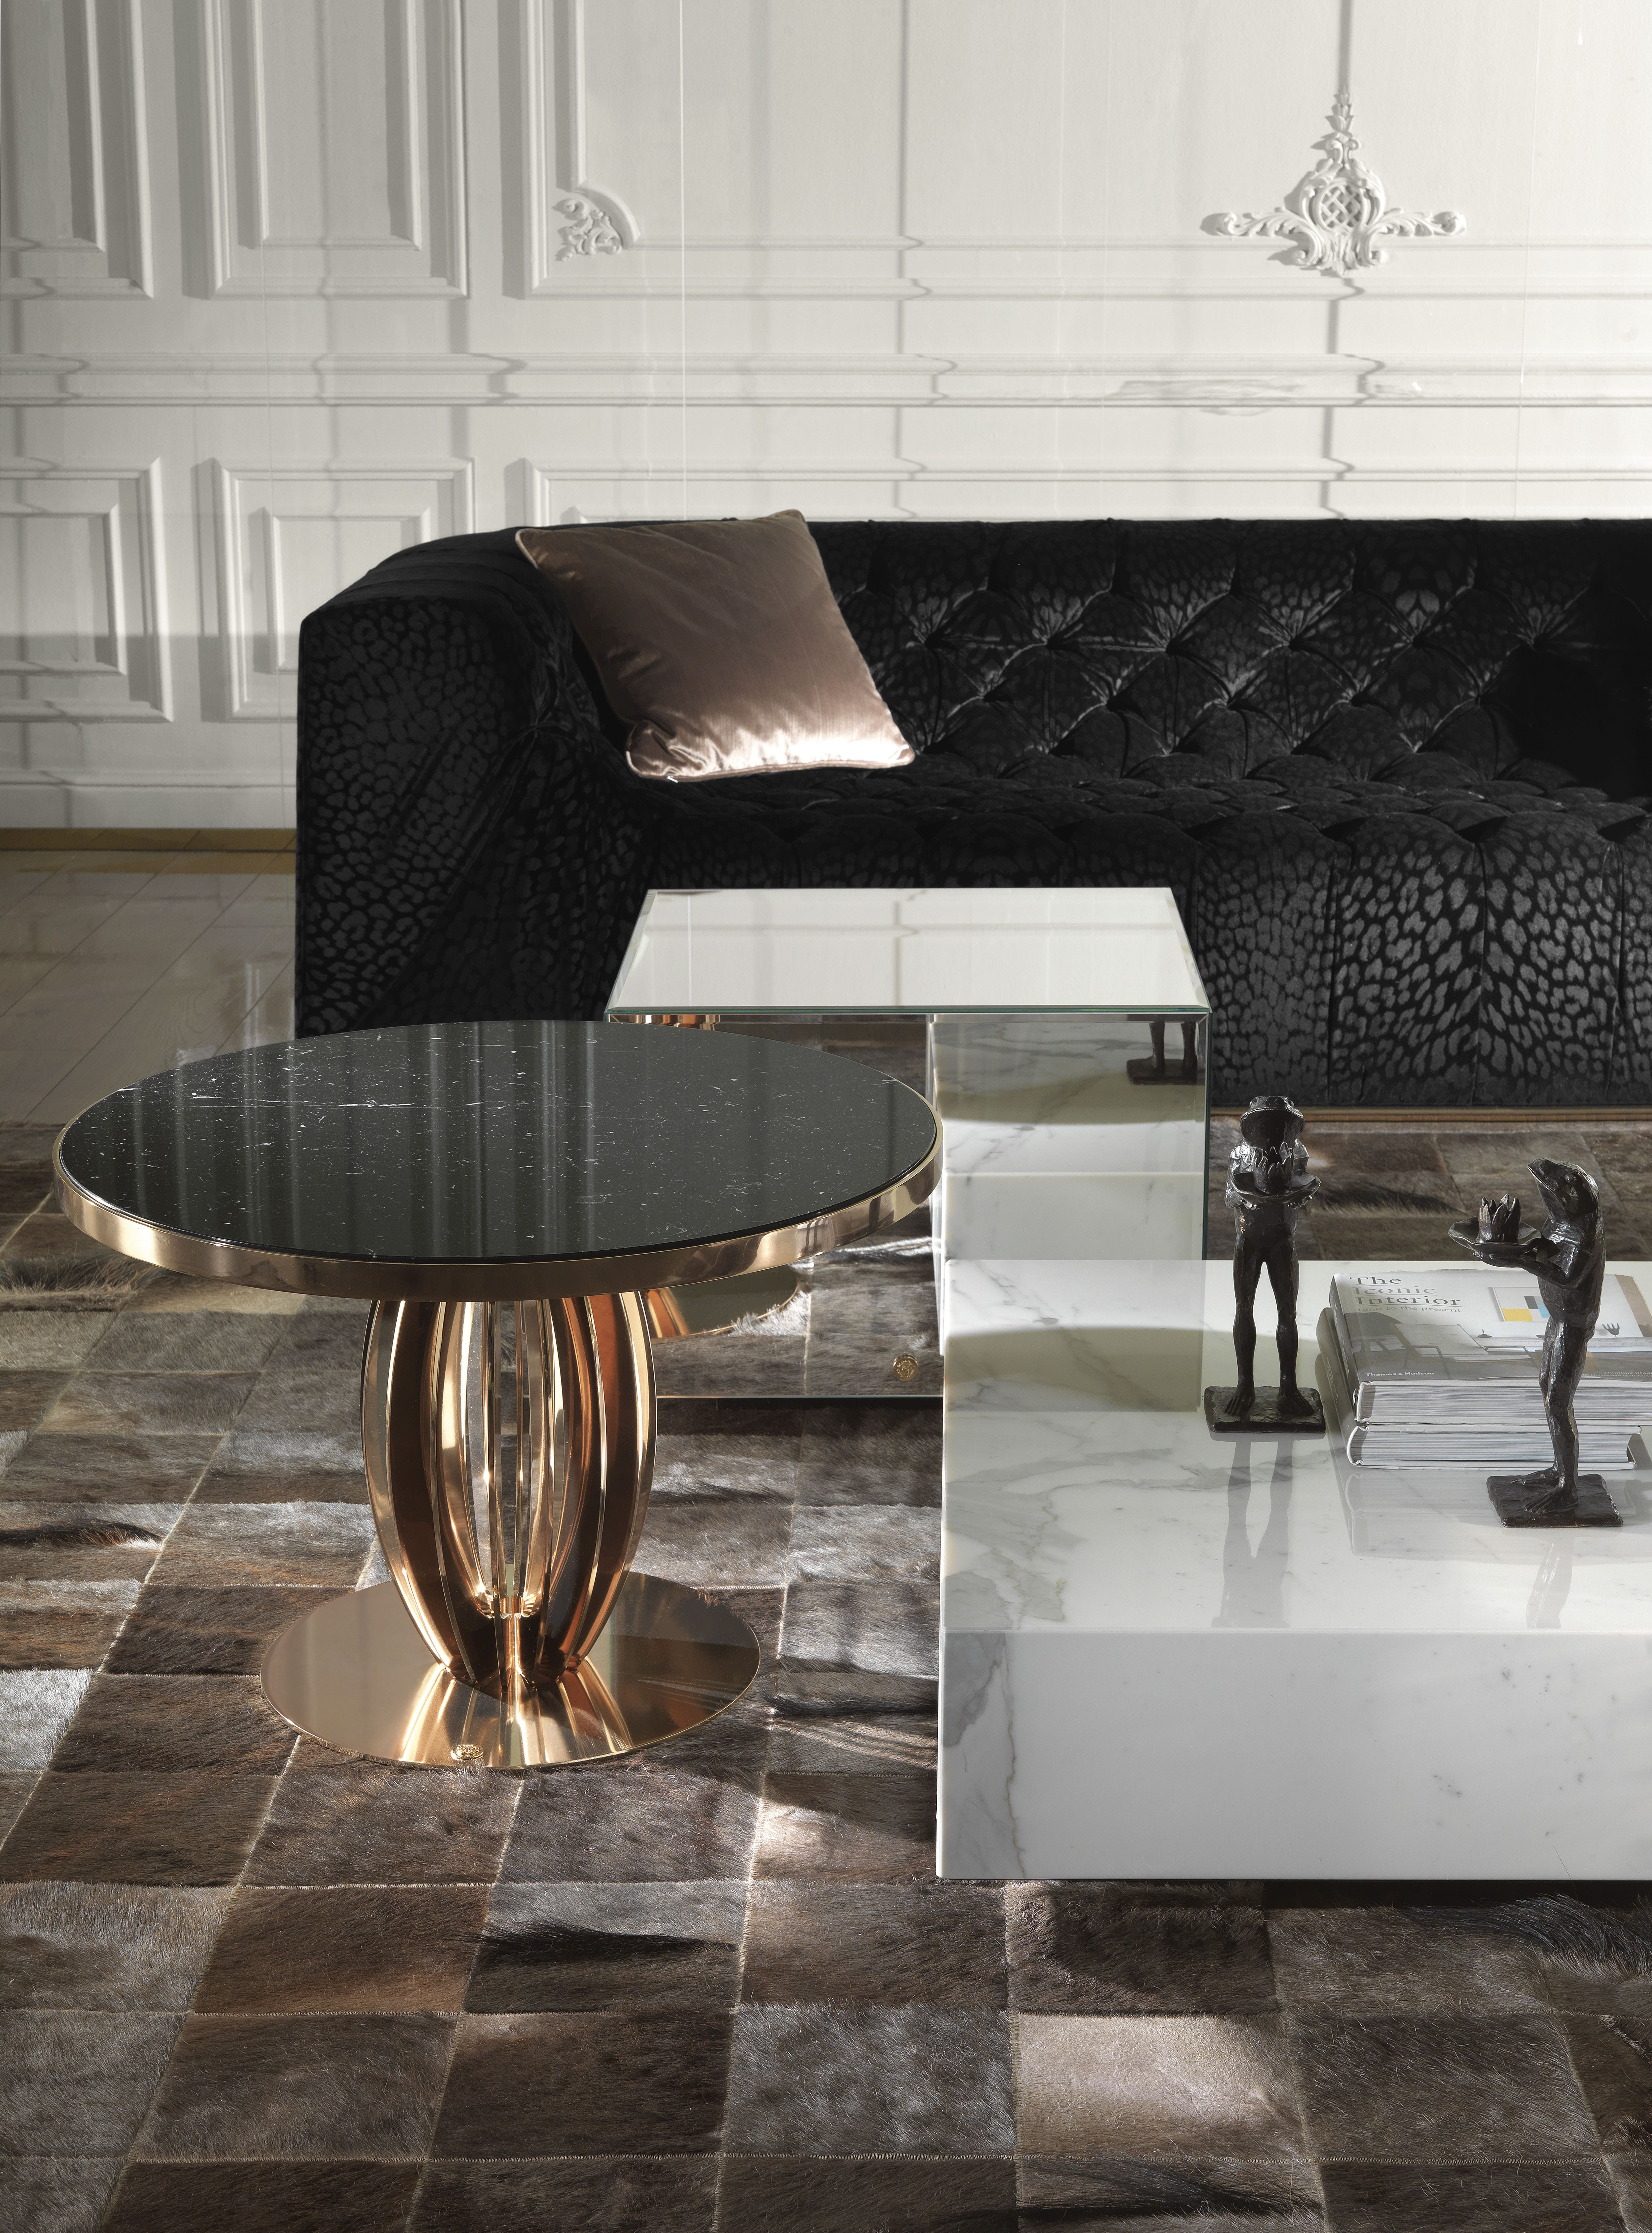 Gold Accents Manhattan Sofa Armchair And Side Tables From The Roberto Cavalli Home Interior S Essential C Home Interior Design Coffee Table Interior Design [ 7216 x 5339 Pixel ]